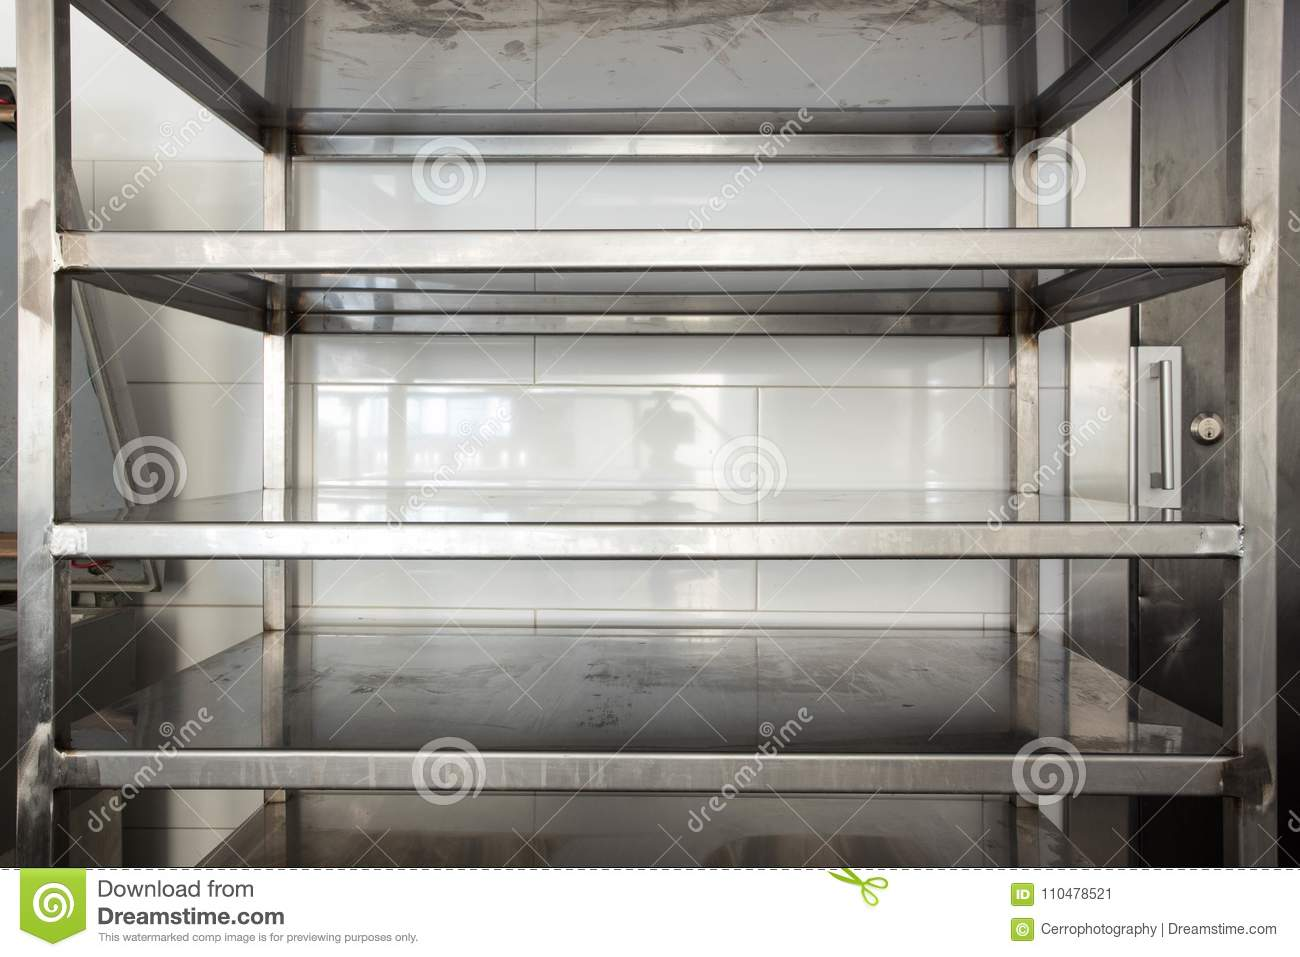 Empty Storage Stainless Steel In A Kitchen Restaurant Or Hotel Stock Image Image Of Hygiene Extraction 110478521